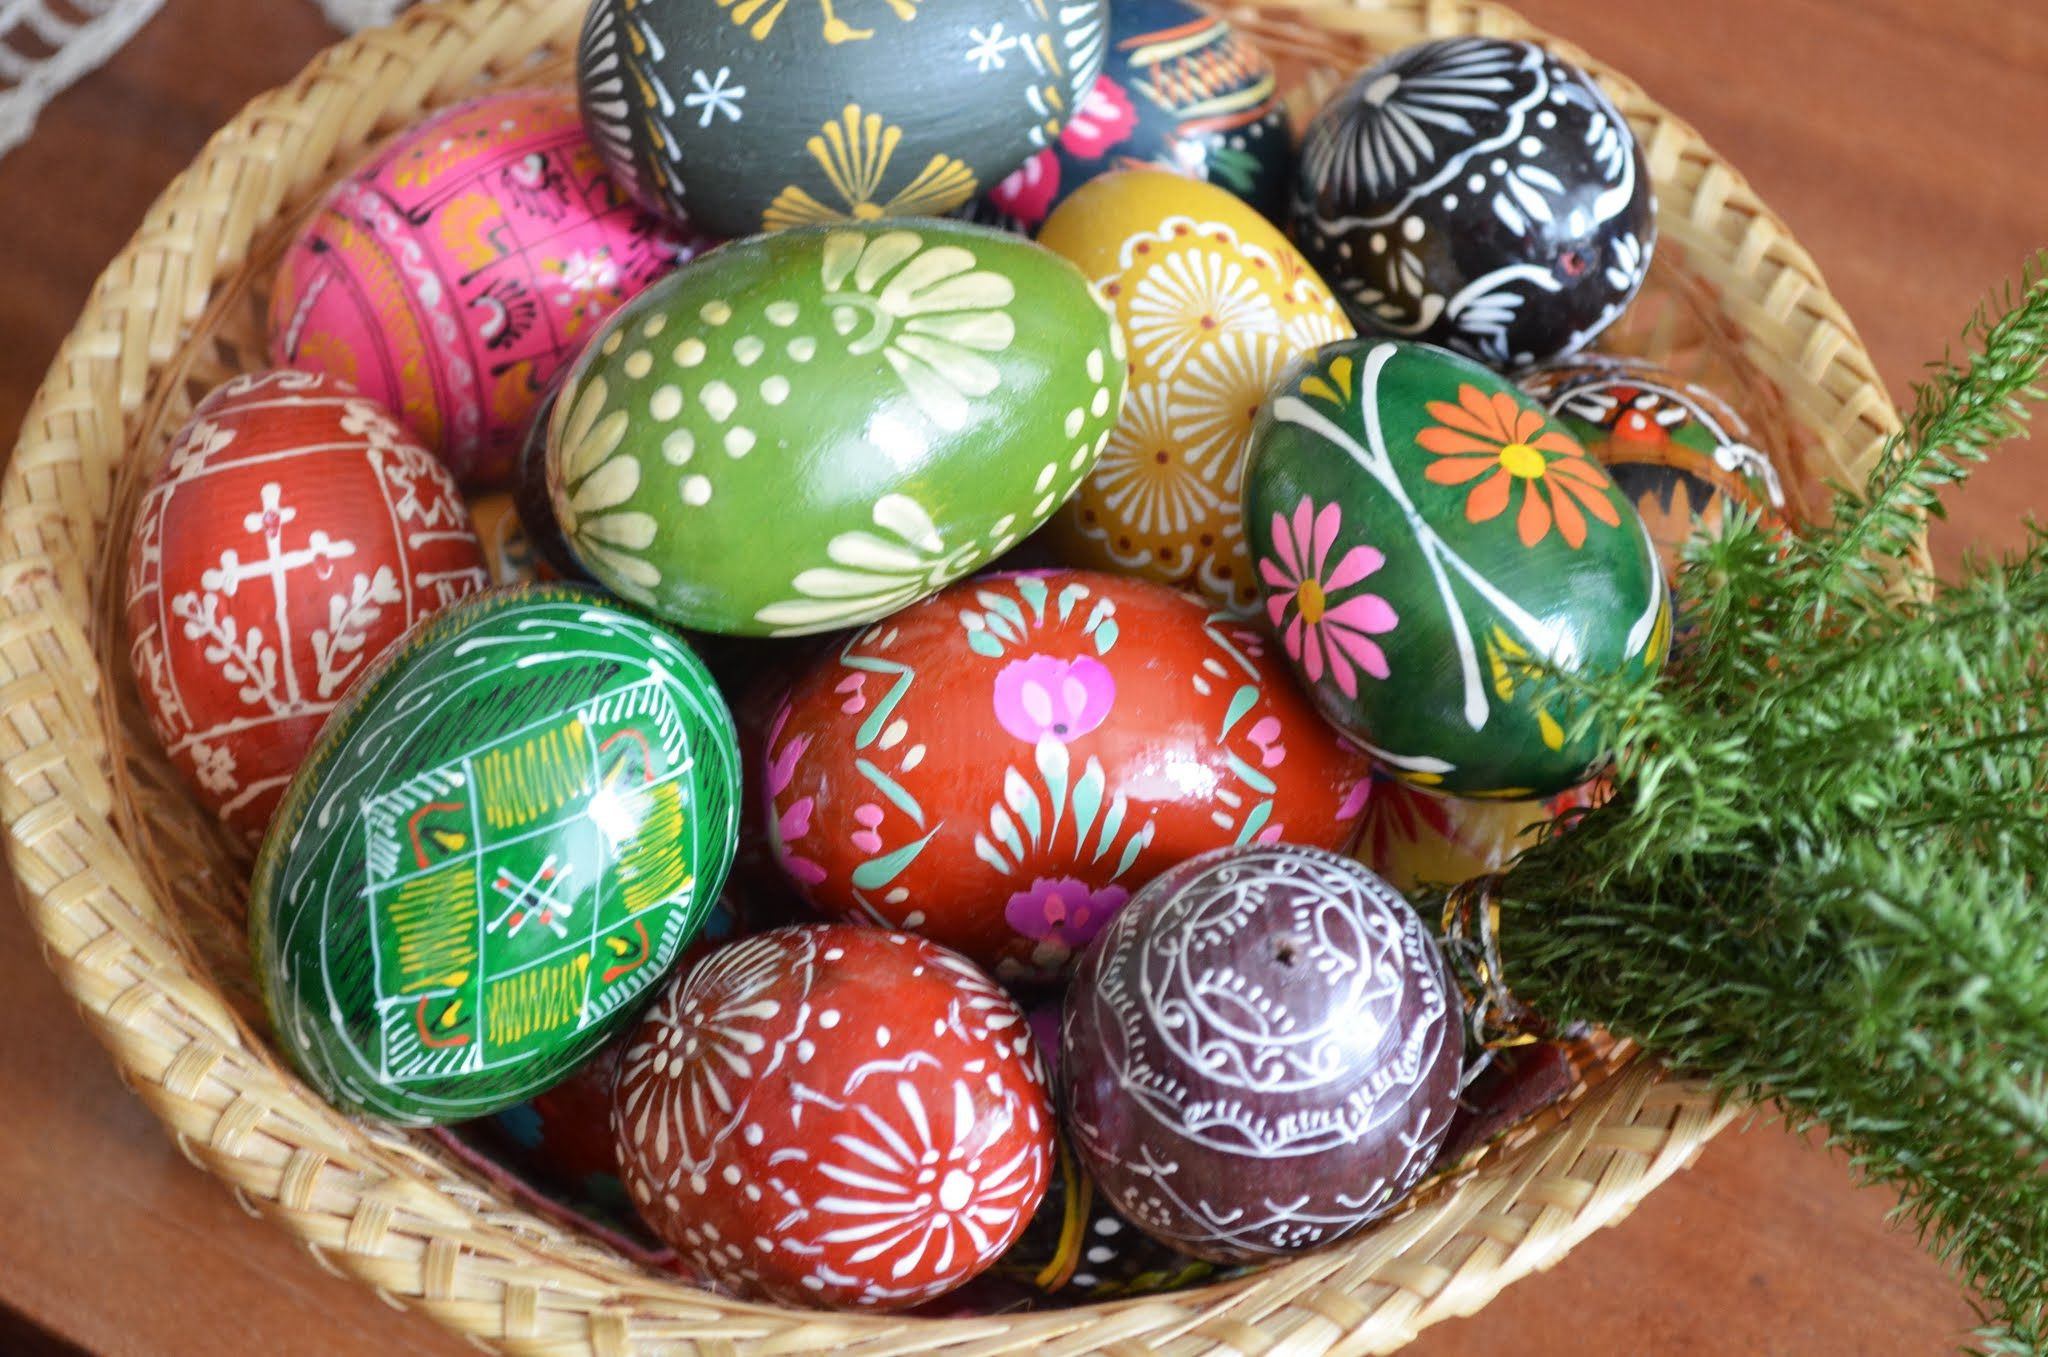 Marguciai Lithuanian Easter Eggs